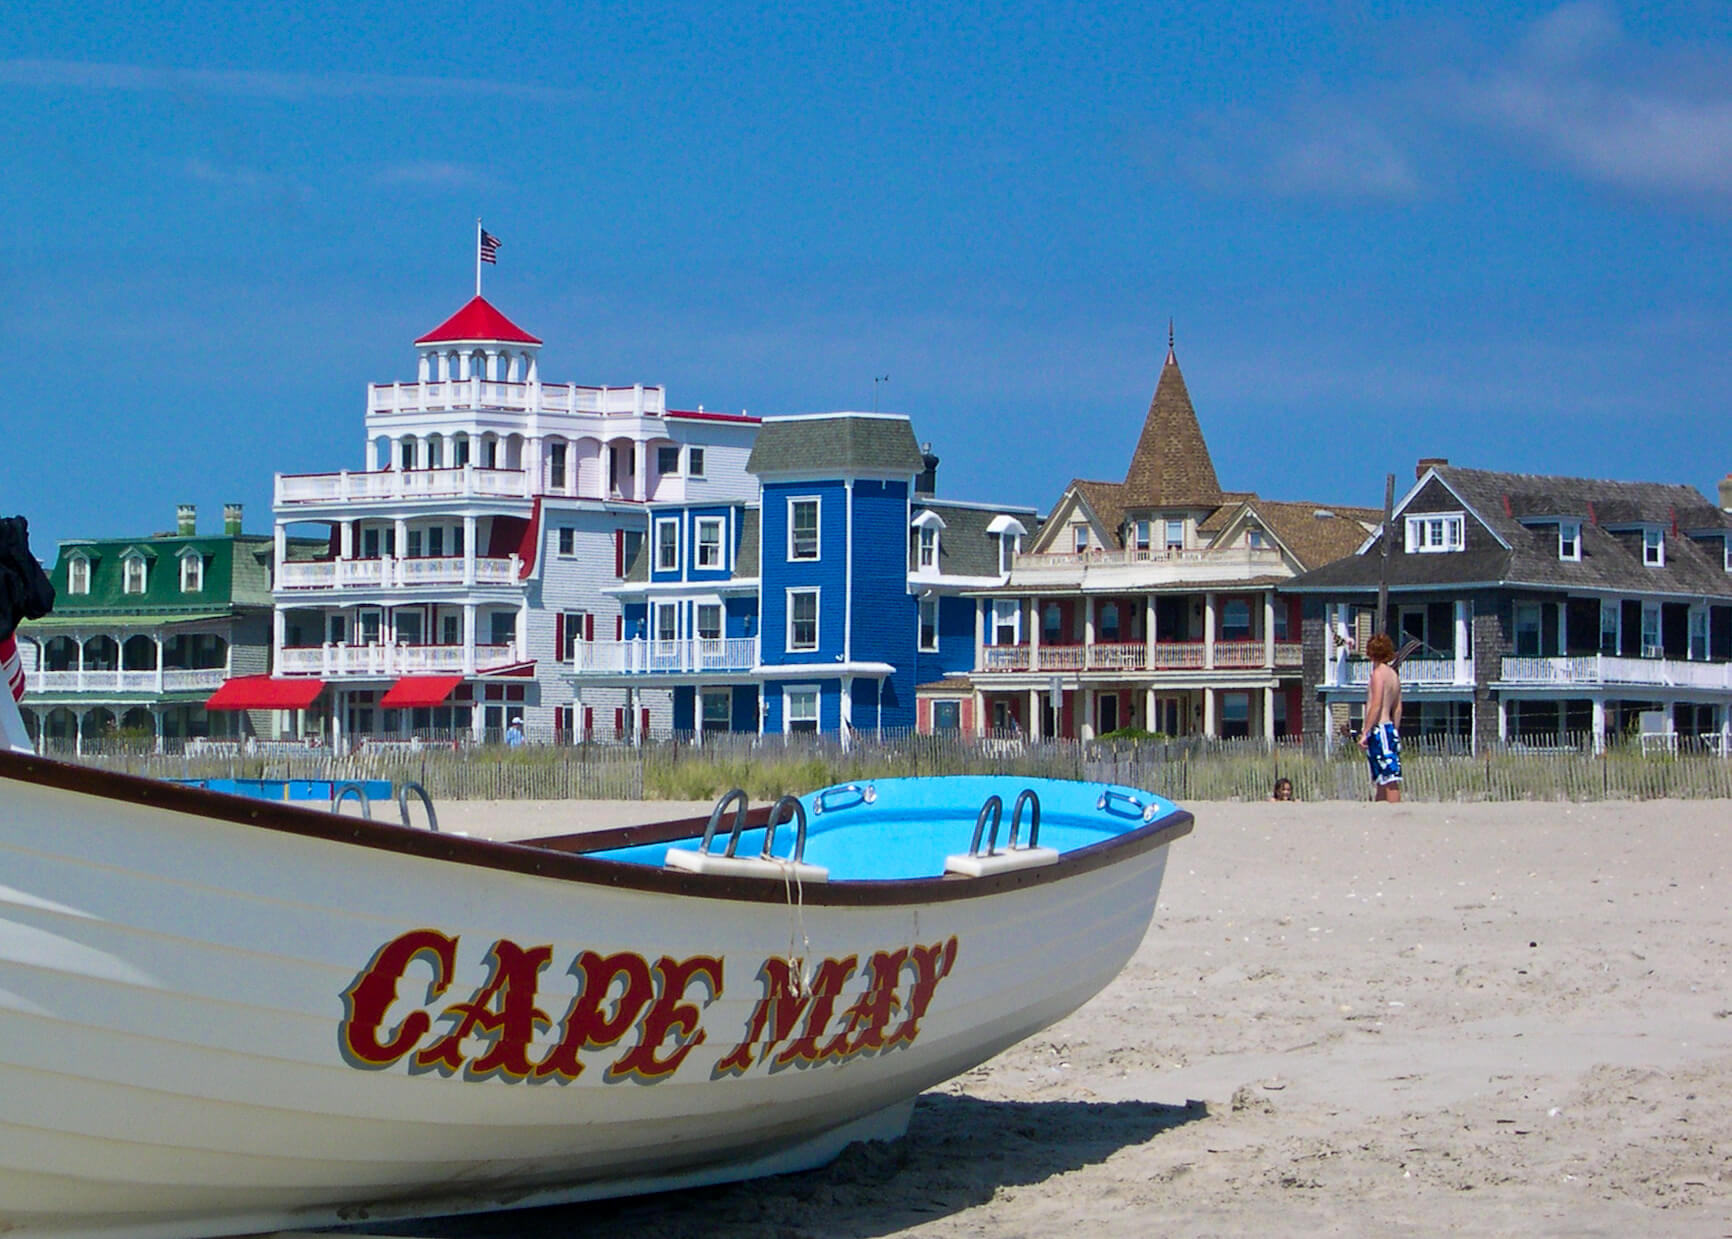 Personals in cape may new jersey